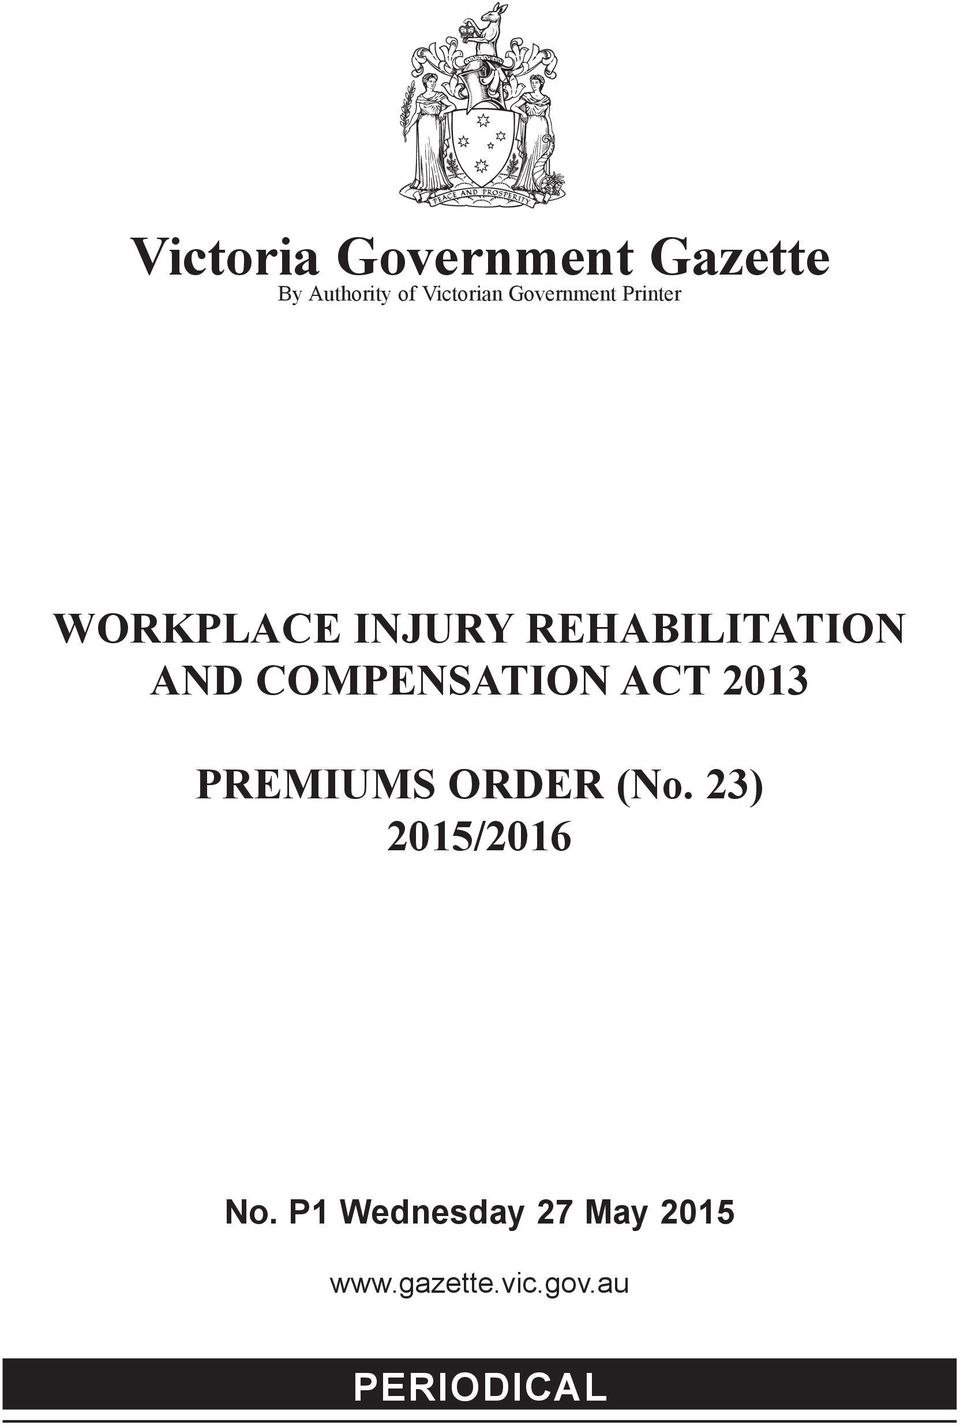 COMPENSATION ACT 2013 PREMIUMS ORDER (No.